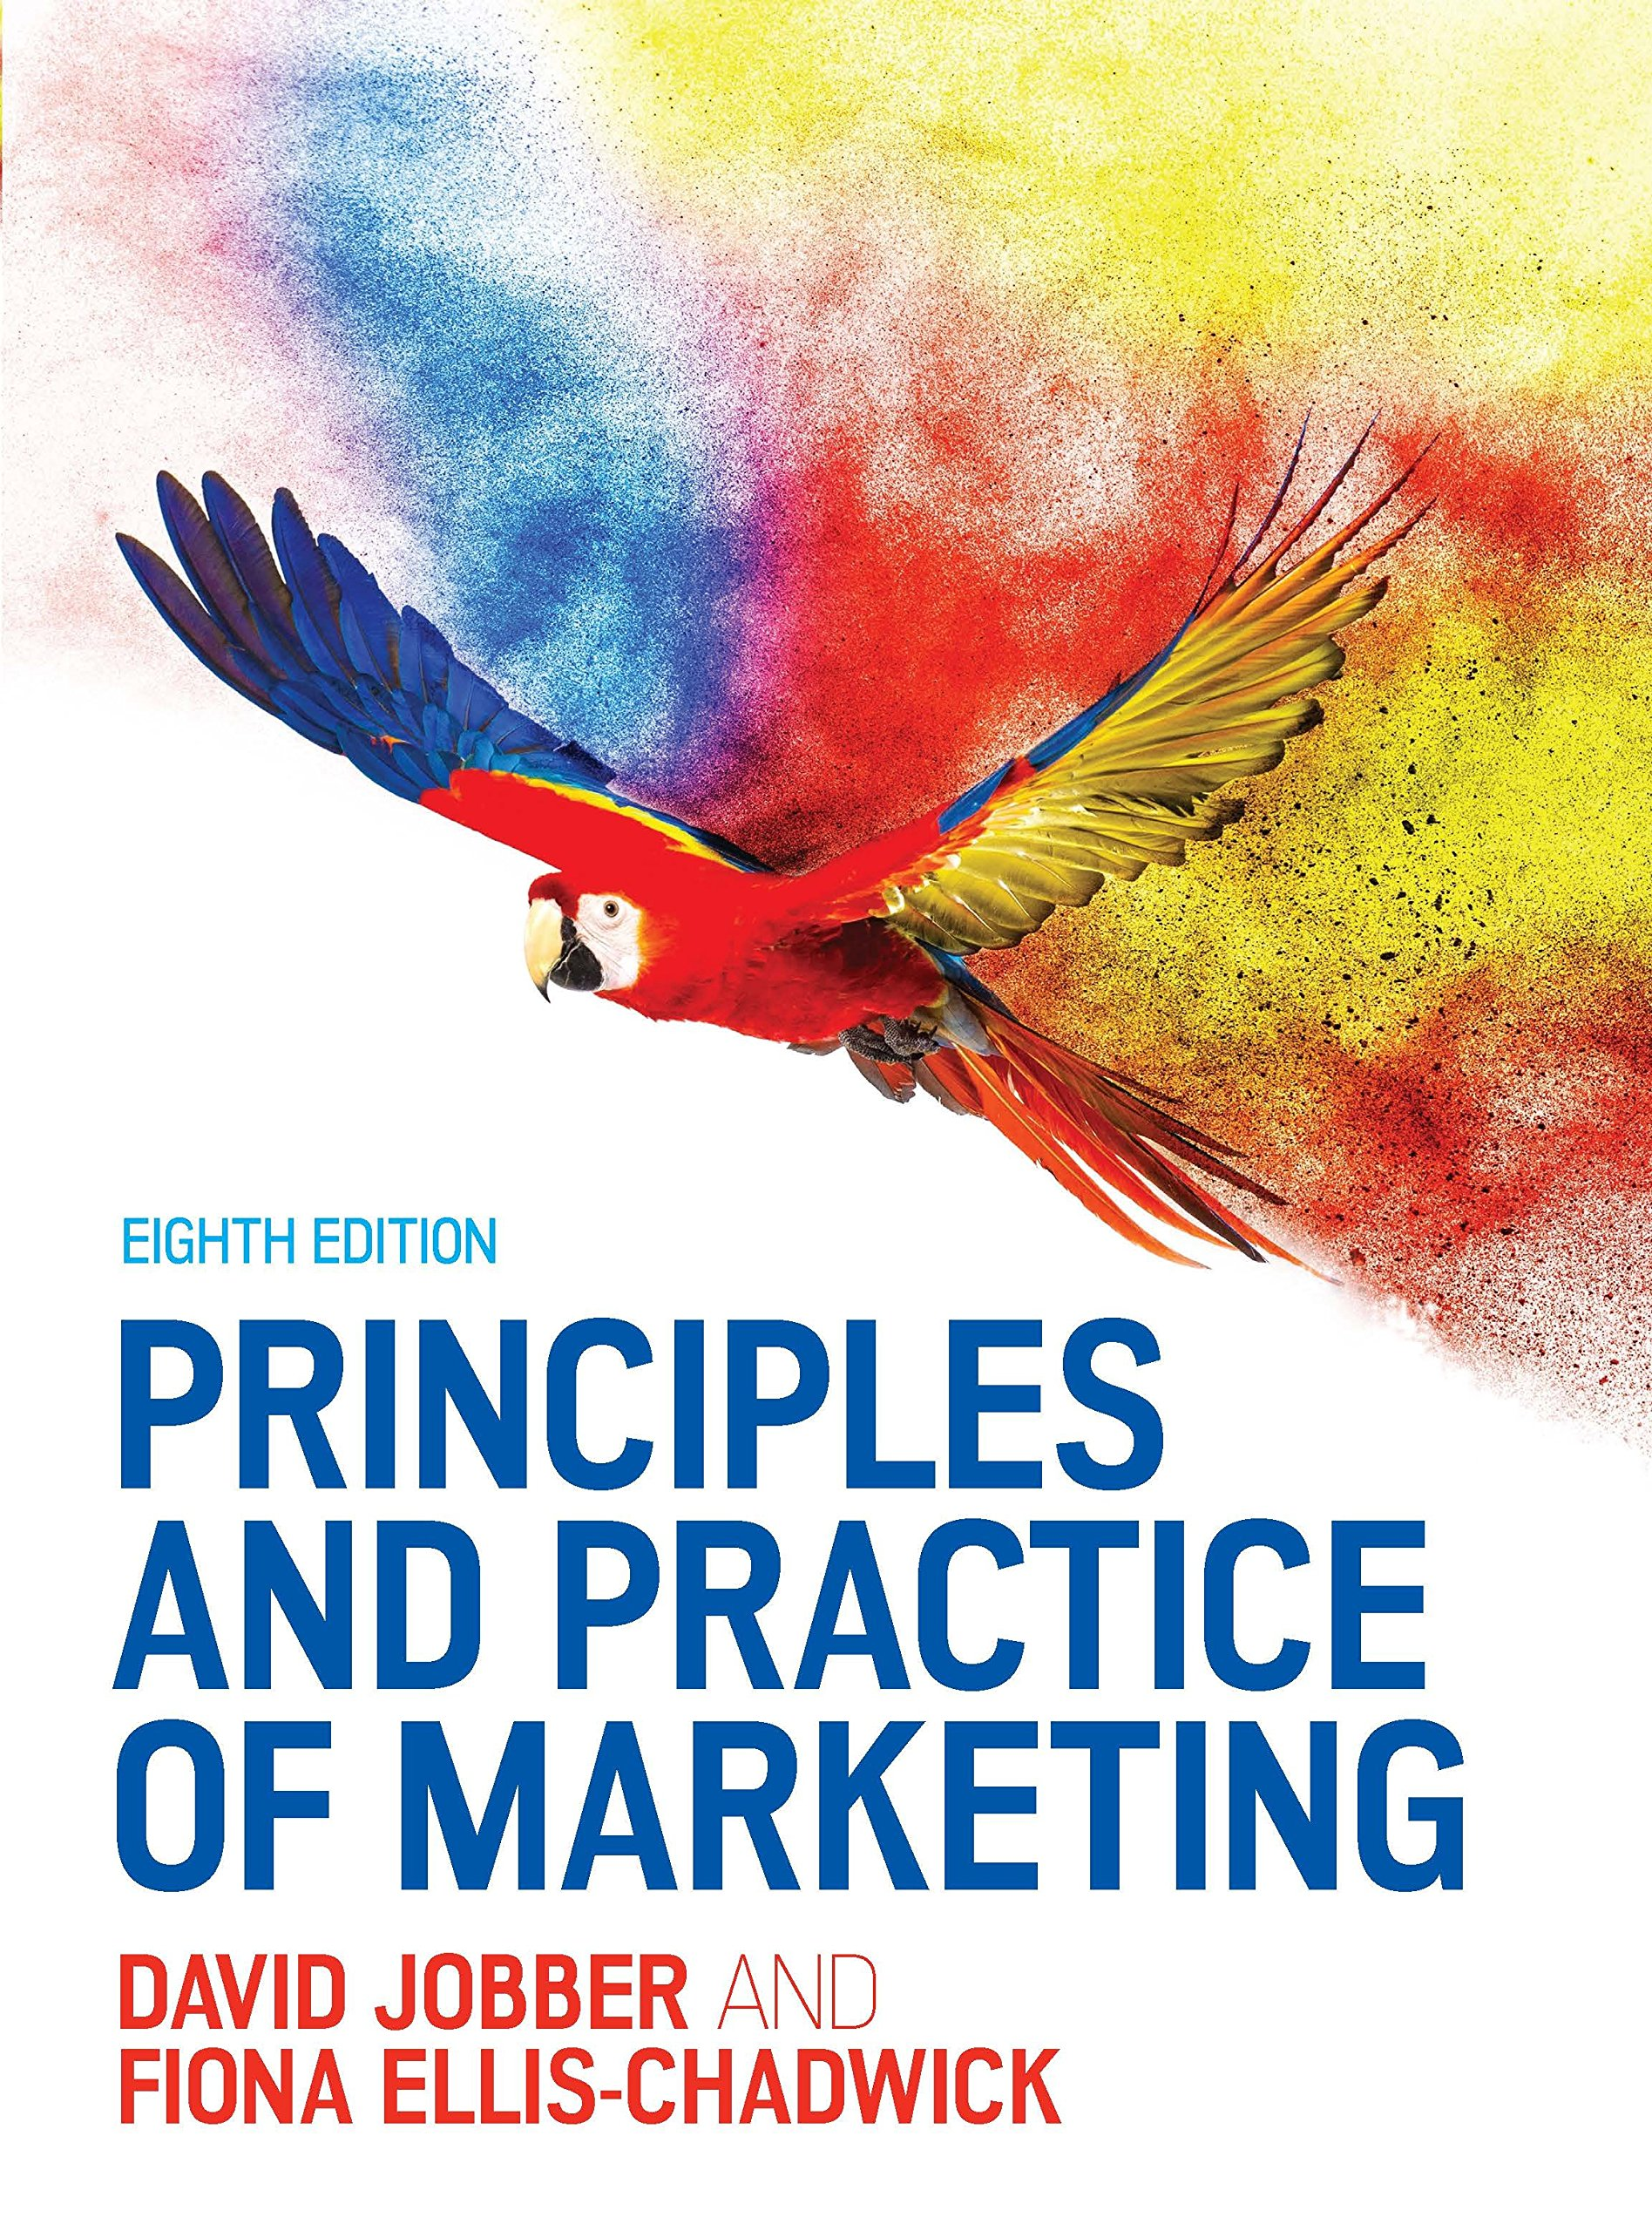 Principles and practice of marketing uk higher education business principles and practice of marketing uk higher education business marketing amazon david jobber fiona ellis chadwick 9780077174149 books fandeluxe Image collections